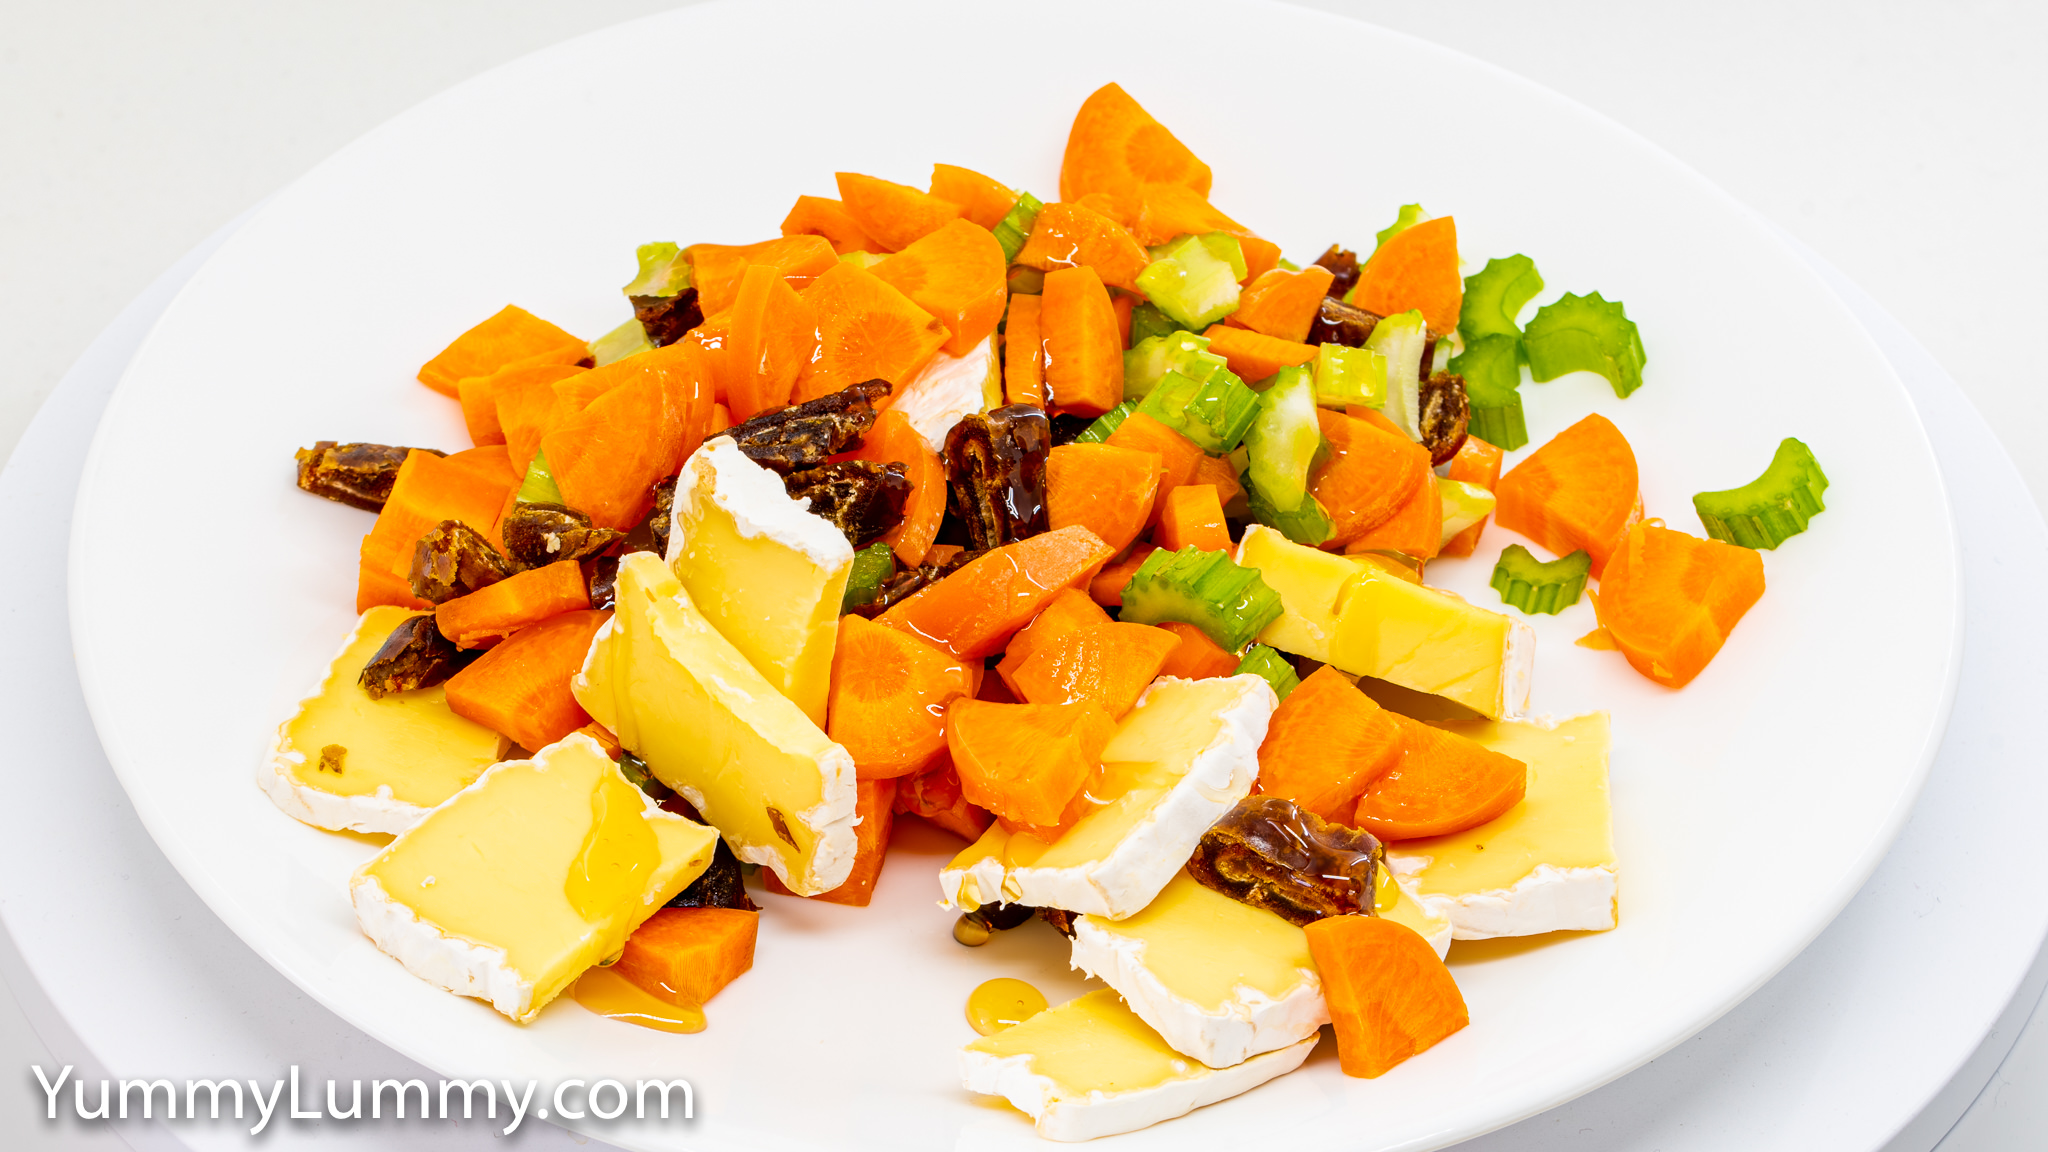 Tasmanian Heritage Triple Cream brie, carrot, celery, dates, and Beechworth honey for Saturday lunch.